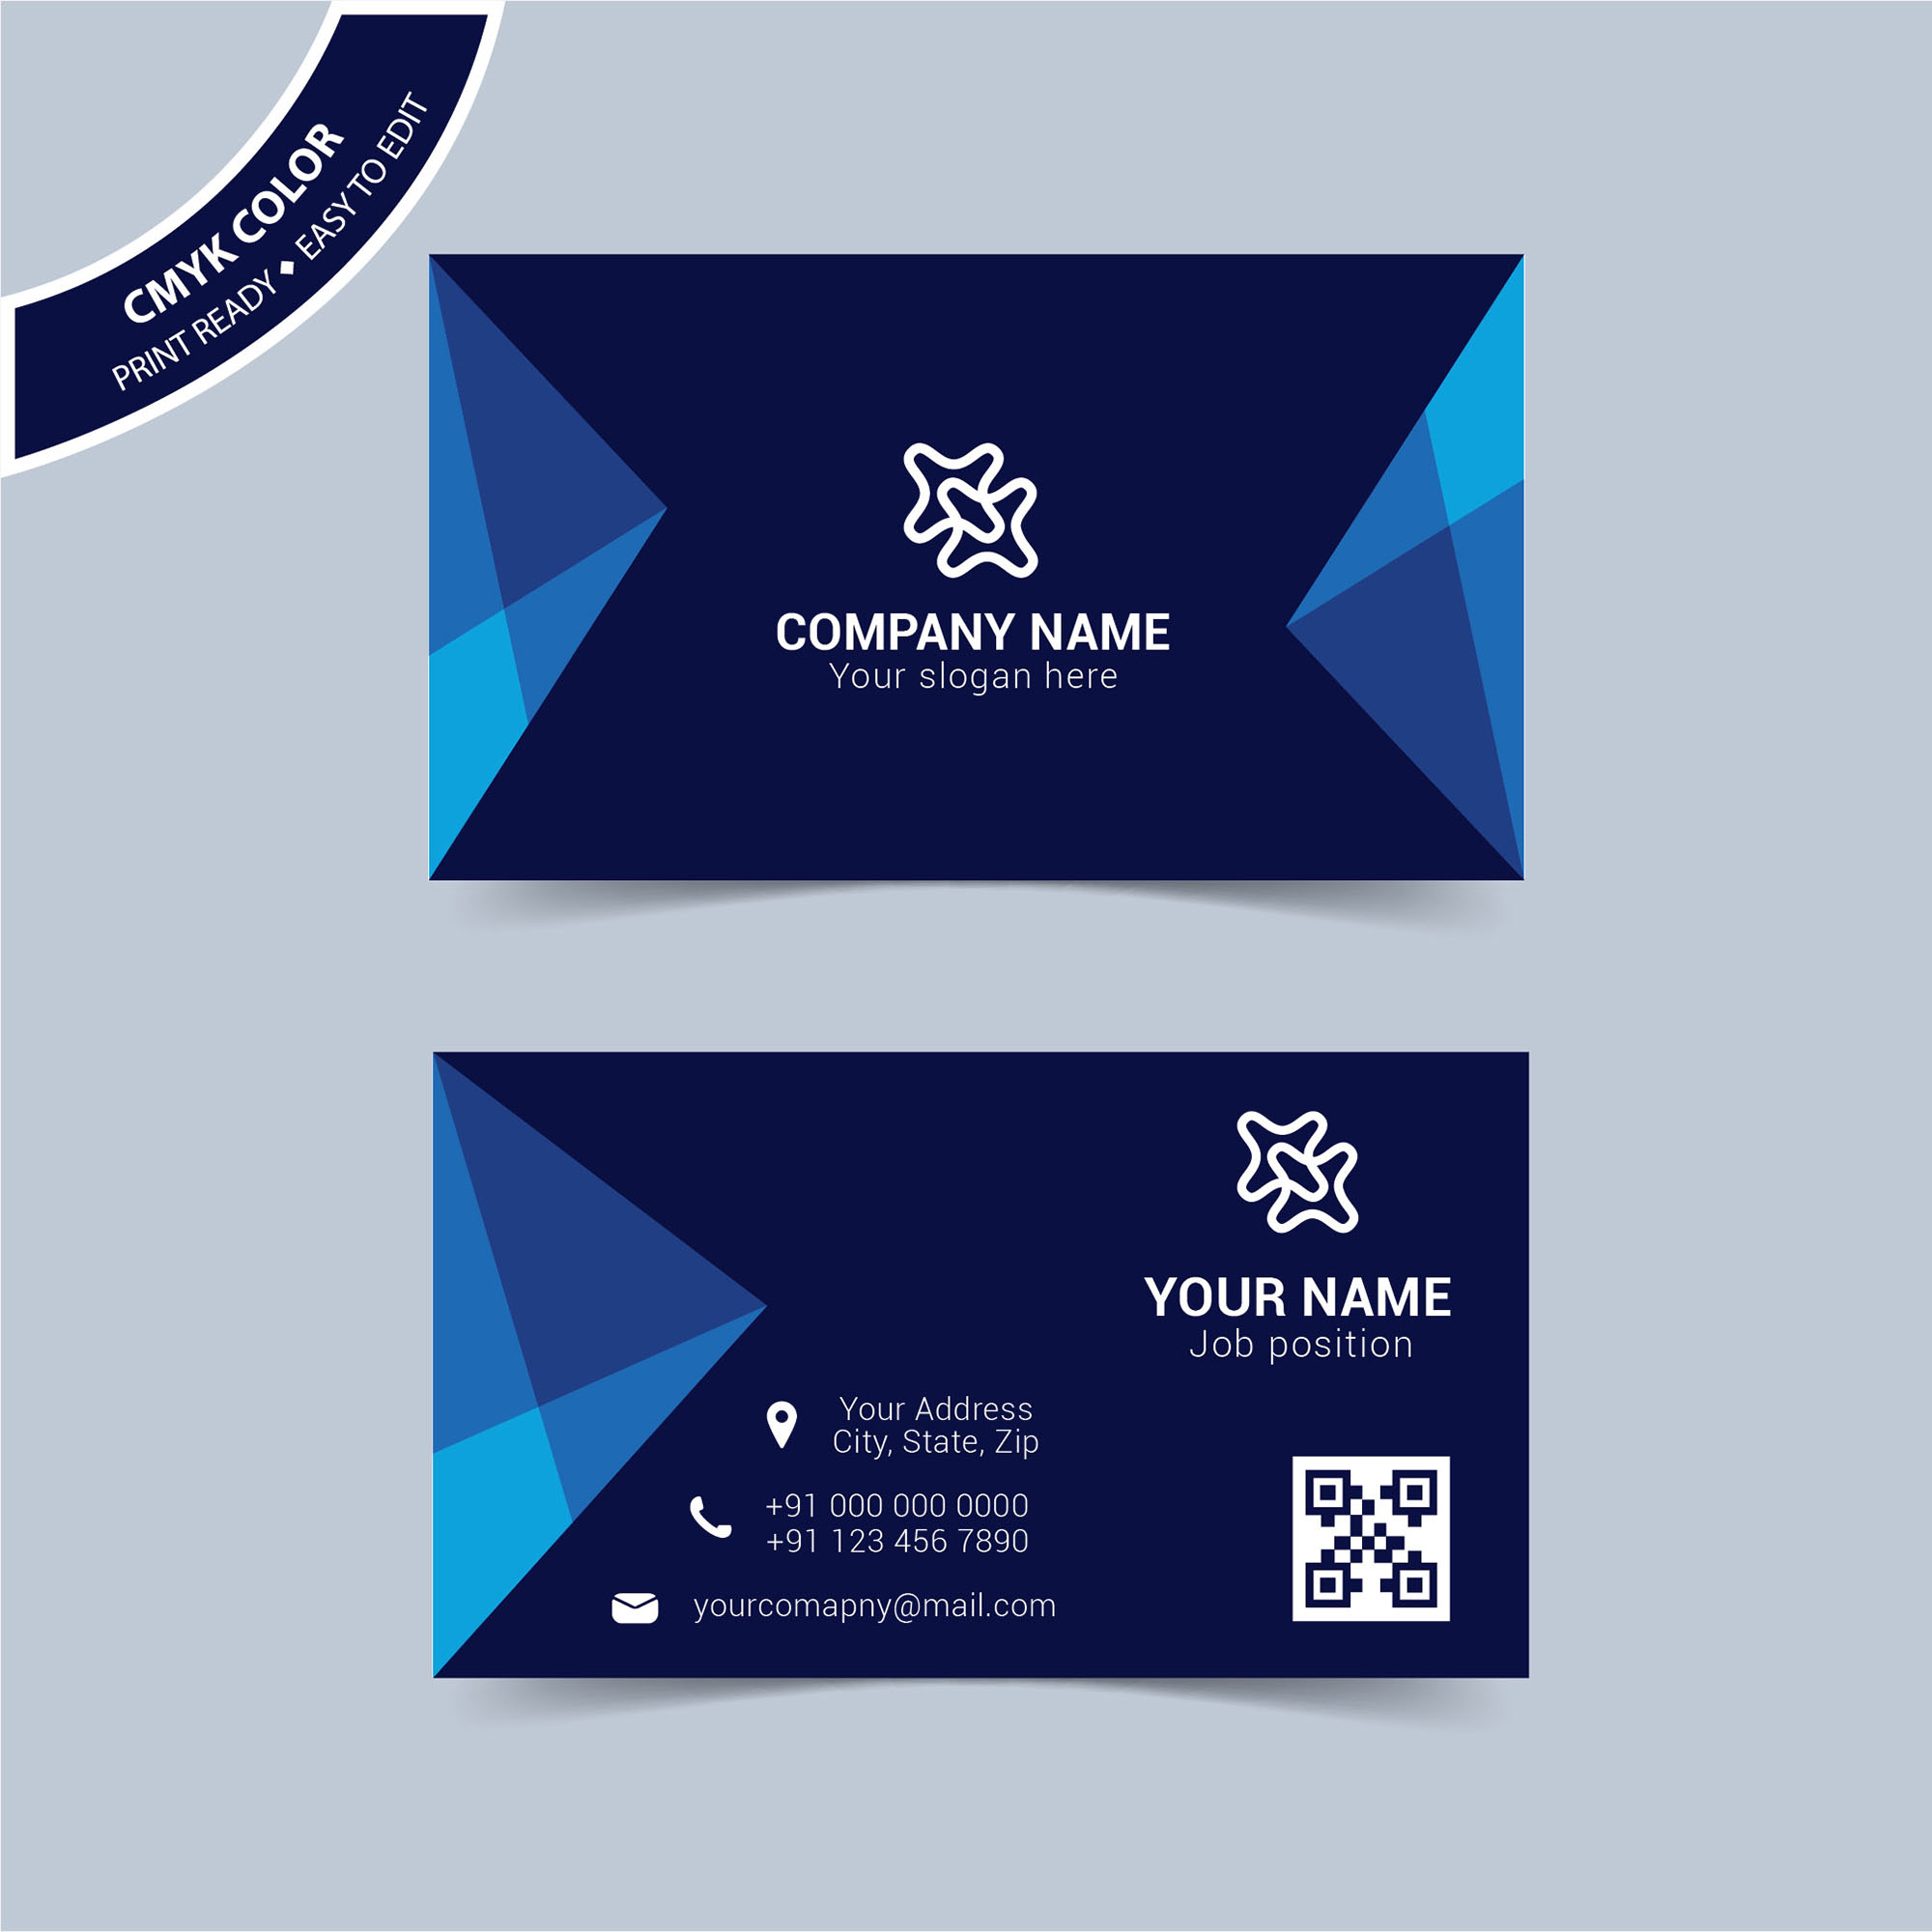 Modern blue business card template free download wisxi business card business cards business card design business card template design templates wajeb